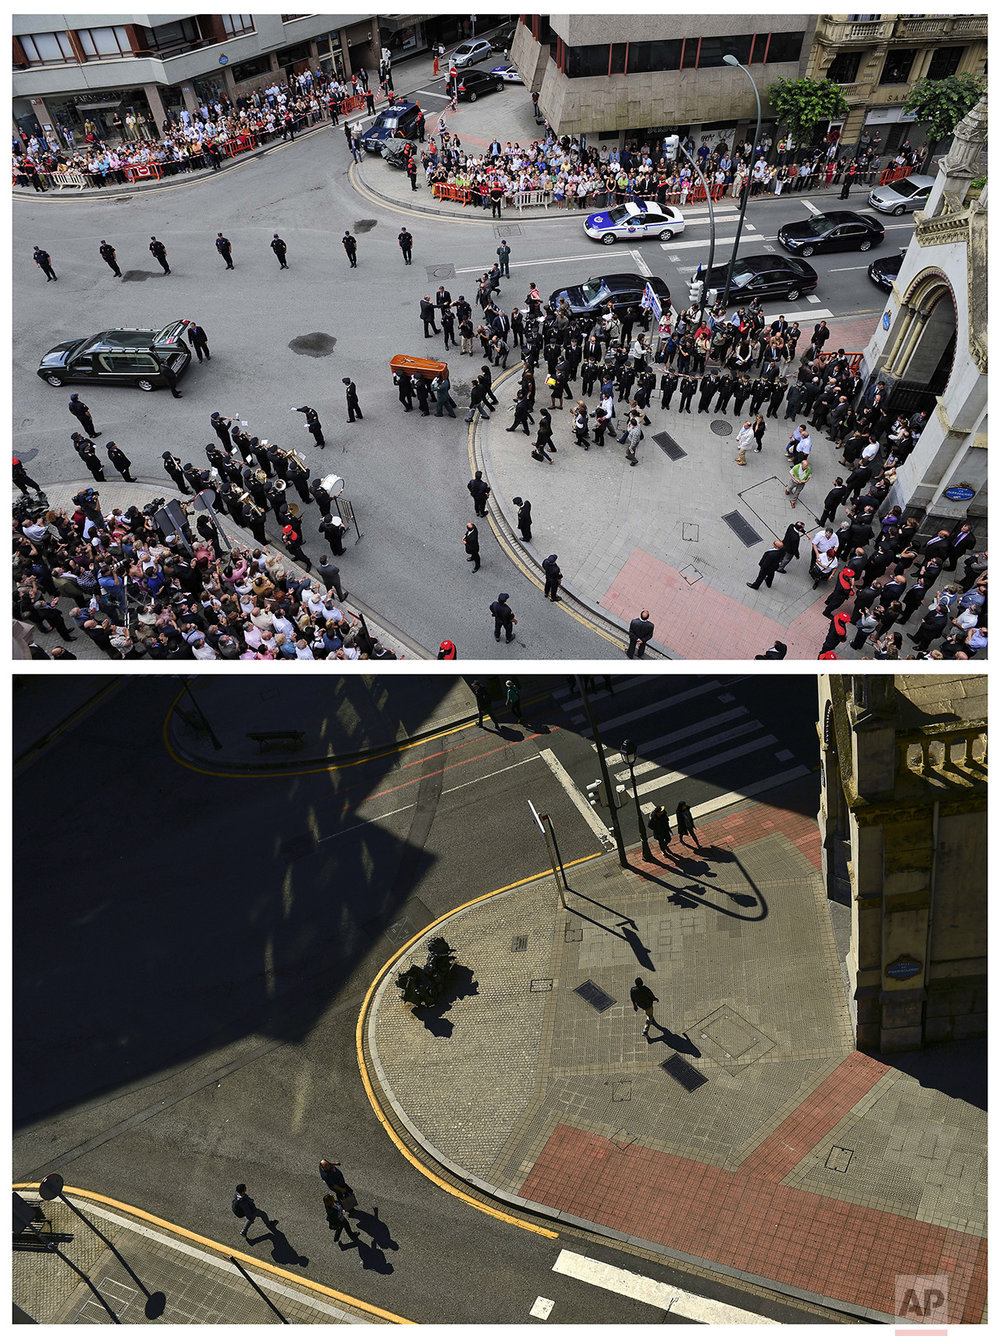 In this two photo combo, the coffin of Spanish National Police officer Eduardo Garcia Pueyes, who was killed after the explosion of a bomb on his car set off by the Basque separatist armed group ETA, is carried by his colleagues during a funeral at the San Jose Church in Bilbao, northern Spain, on June 20, 2009, top, and people walking beside the same church on April 3, 2017. (AP Photo/Alvaro Barrientos)